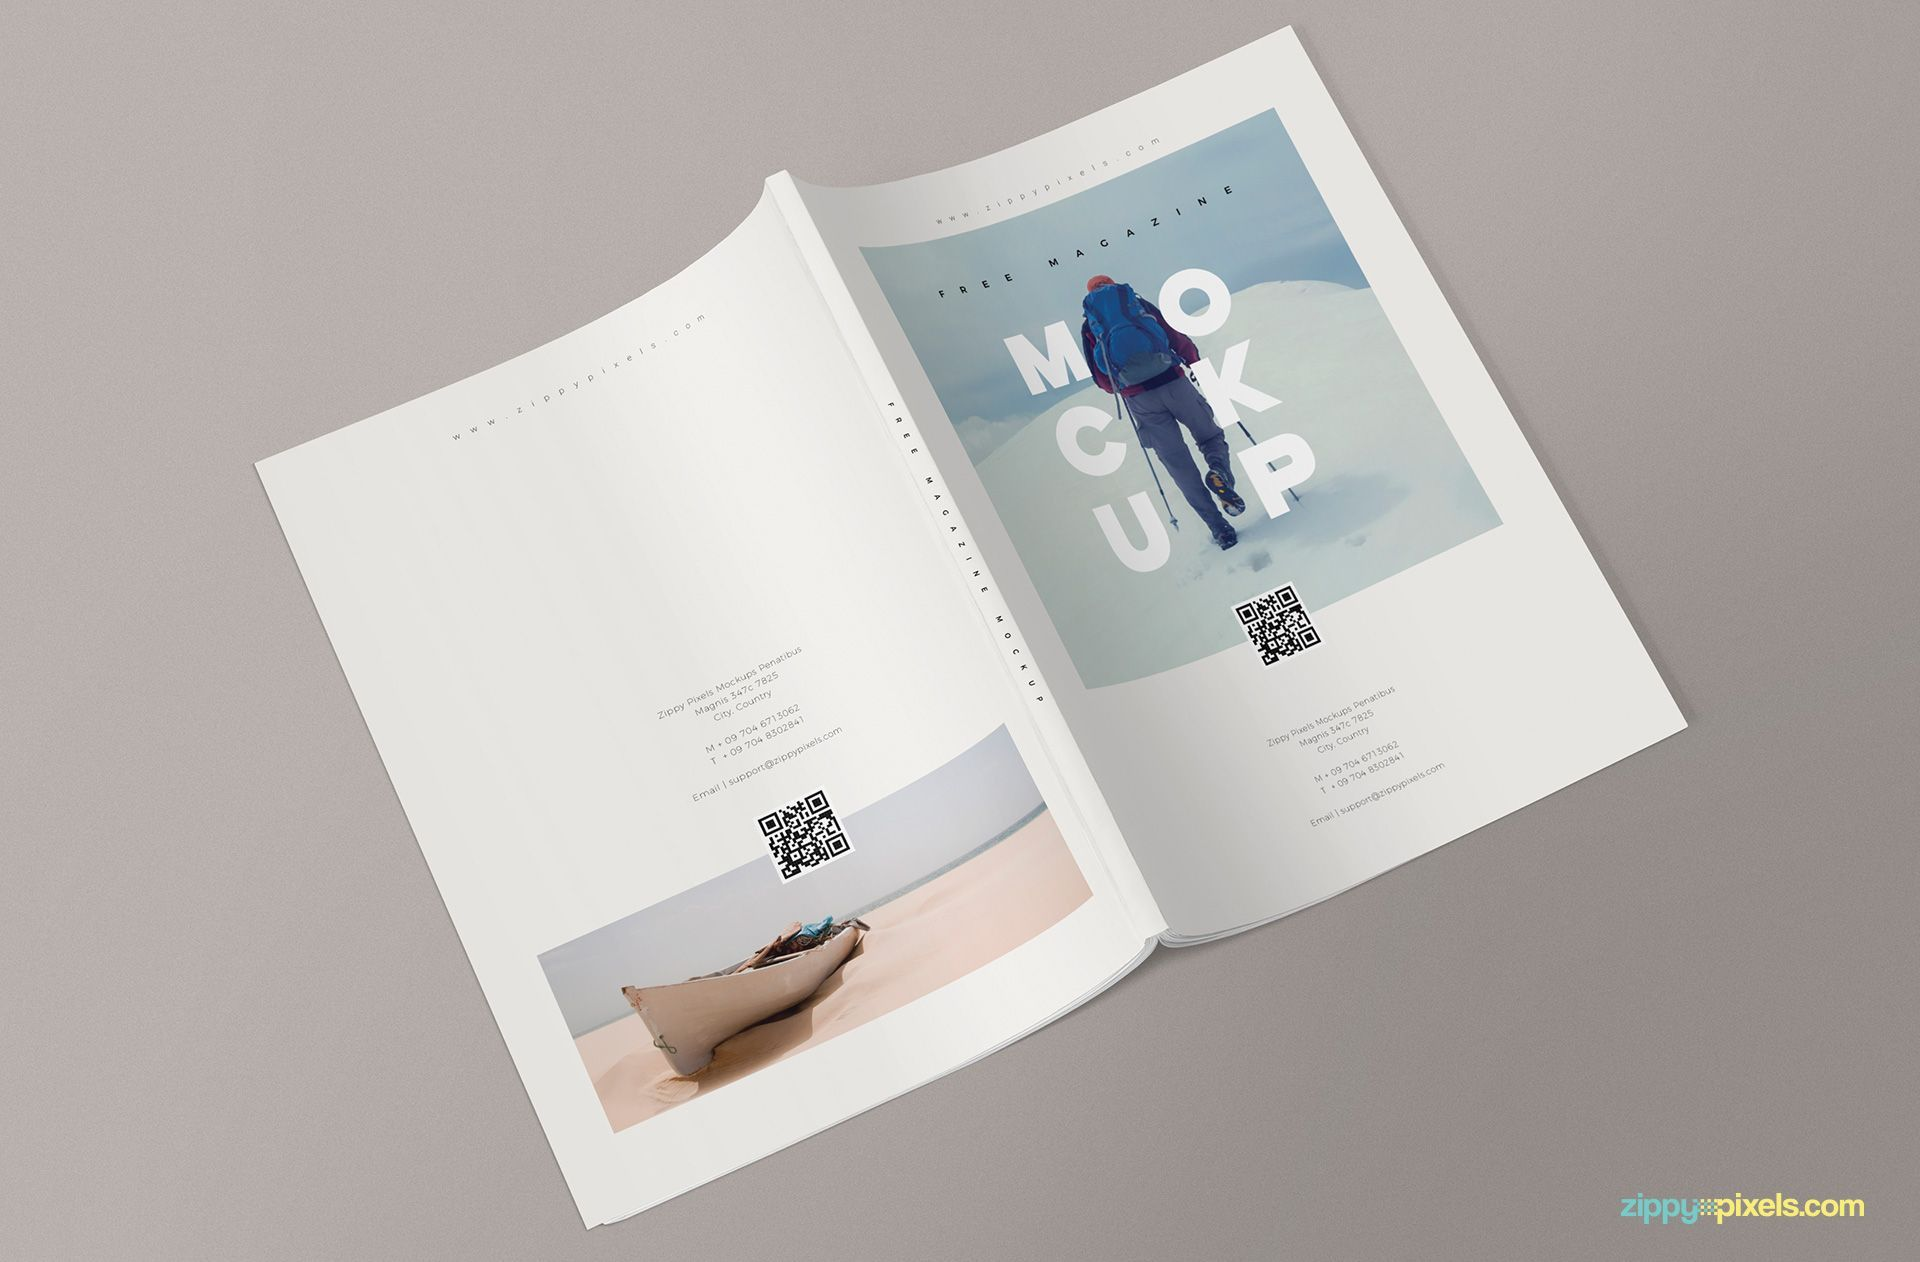 003 Exceptional Photoshop Magazine Layout Template Free Download Picture Full